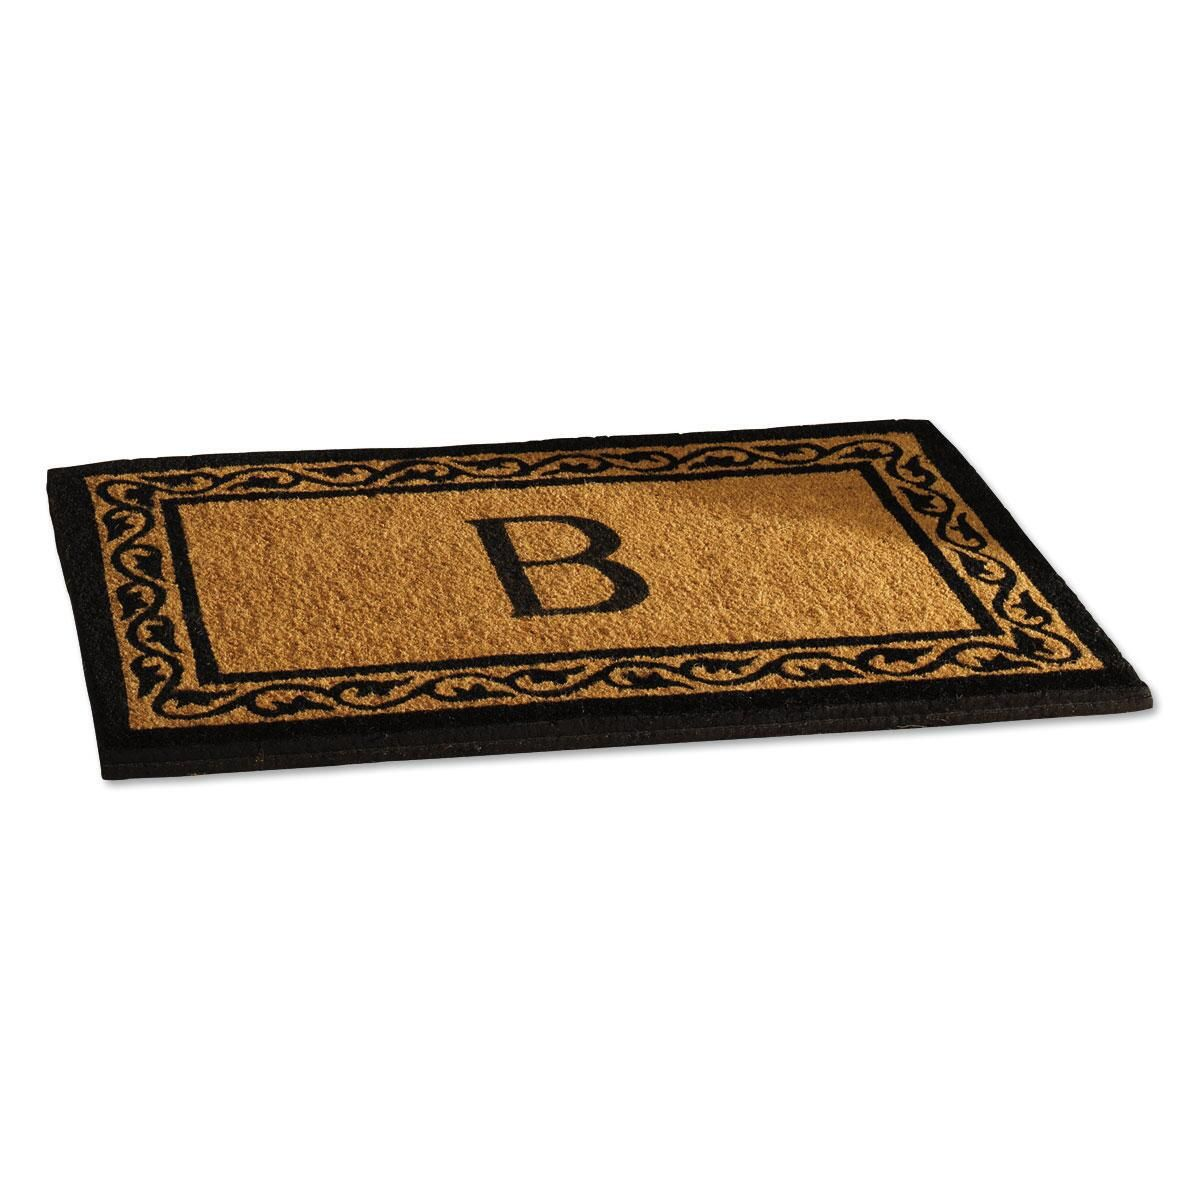 Personalized Door Mats, Runner Rugs & Kitchen Mats | Lillian Vernon